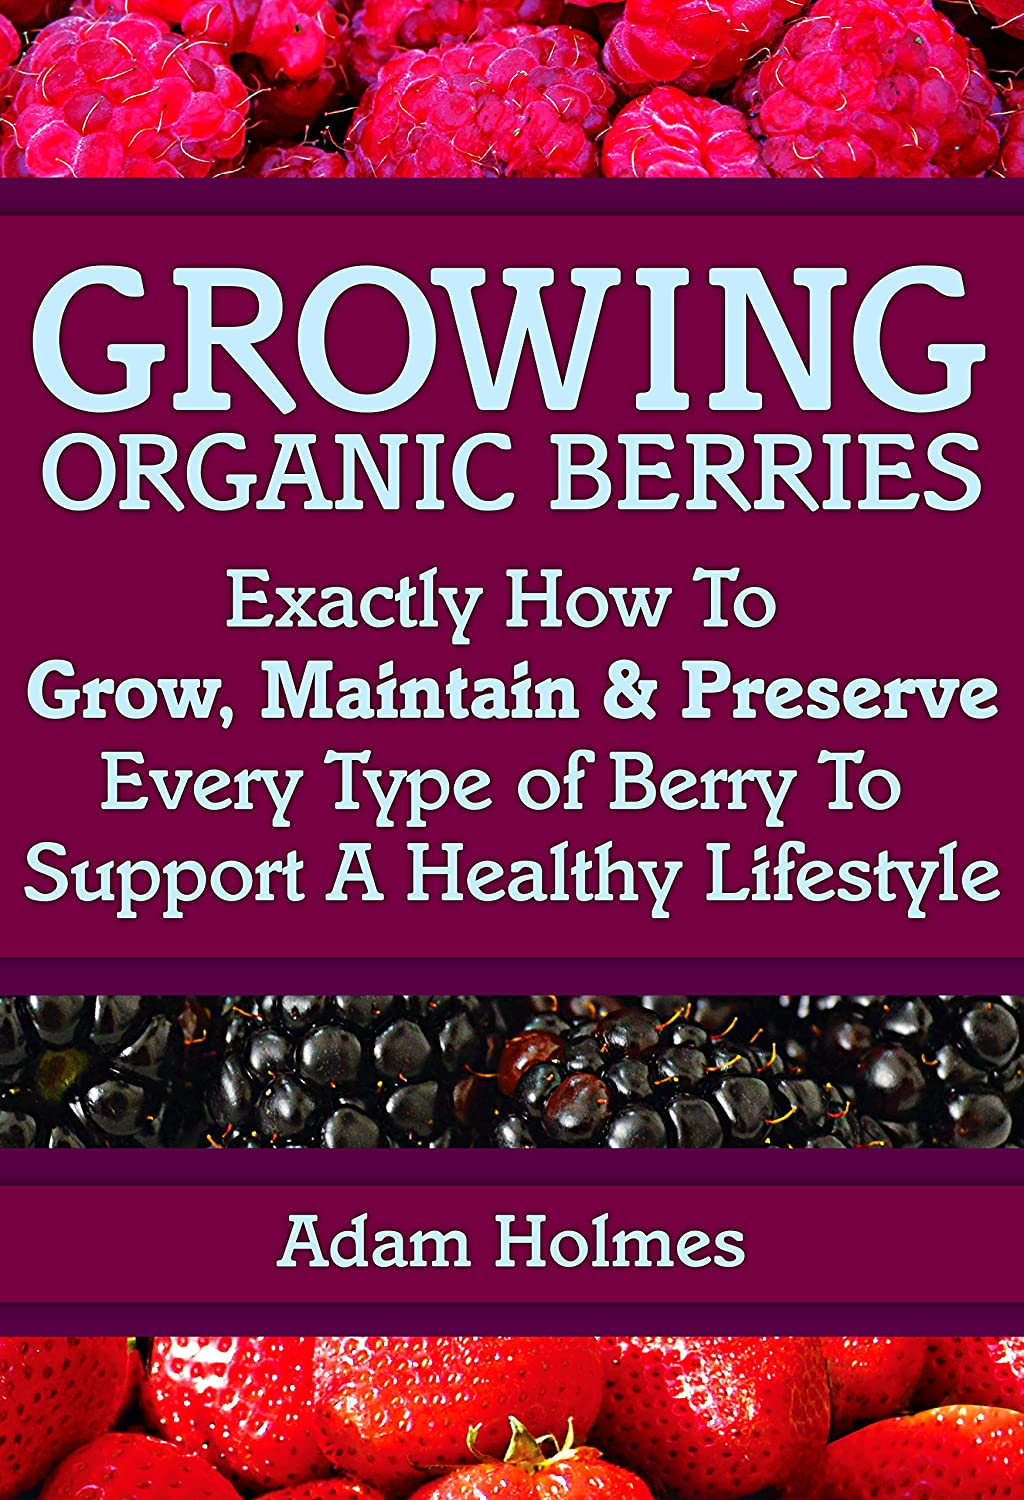 http://www.amazon.com/Growing-Organic-Berries-Maintain-Lifestyle-ebook/dp/B00M1AWCJ4/ref=as_sl_pc_ss_til?tag=lettfromahome-20&linkCode=w01&linkId=&creativeASIN=B00M1AWCJ4